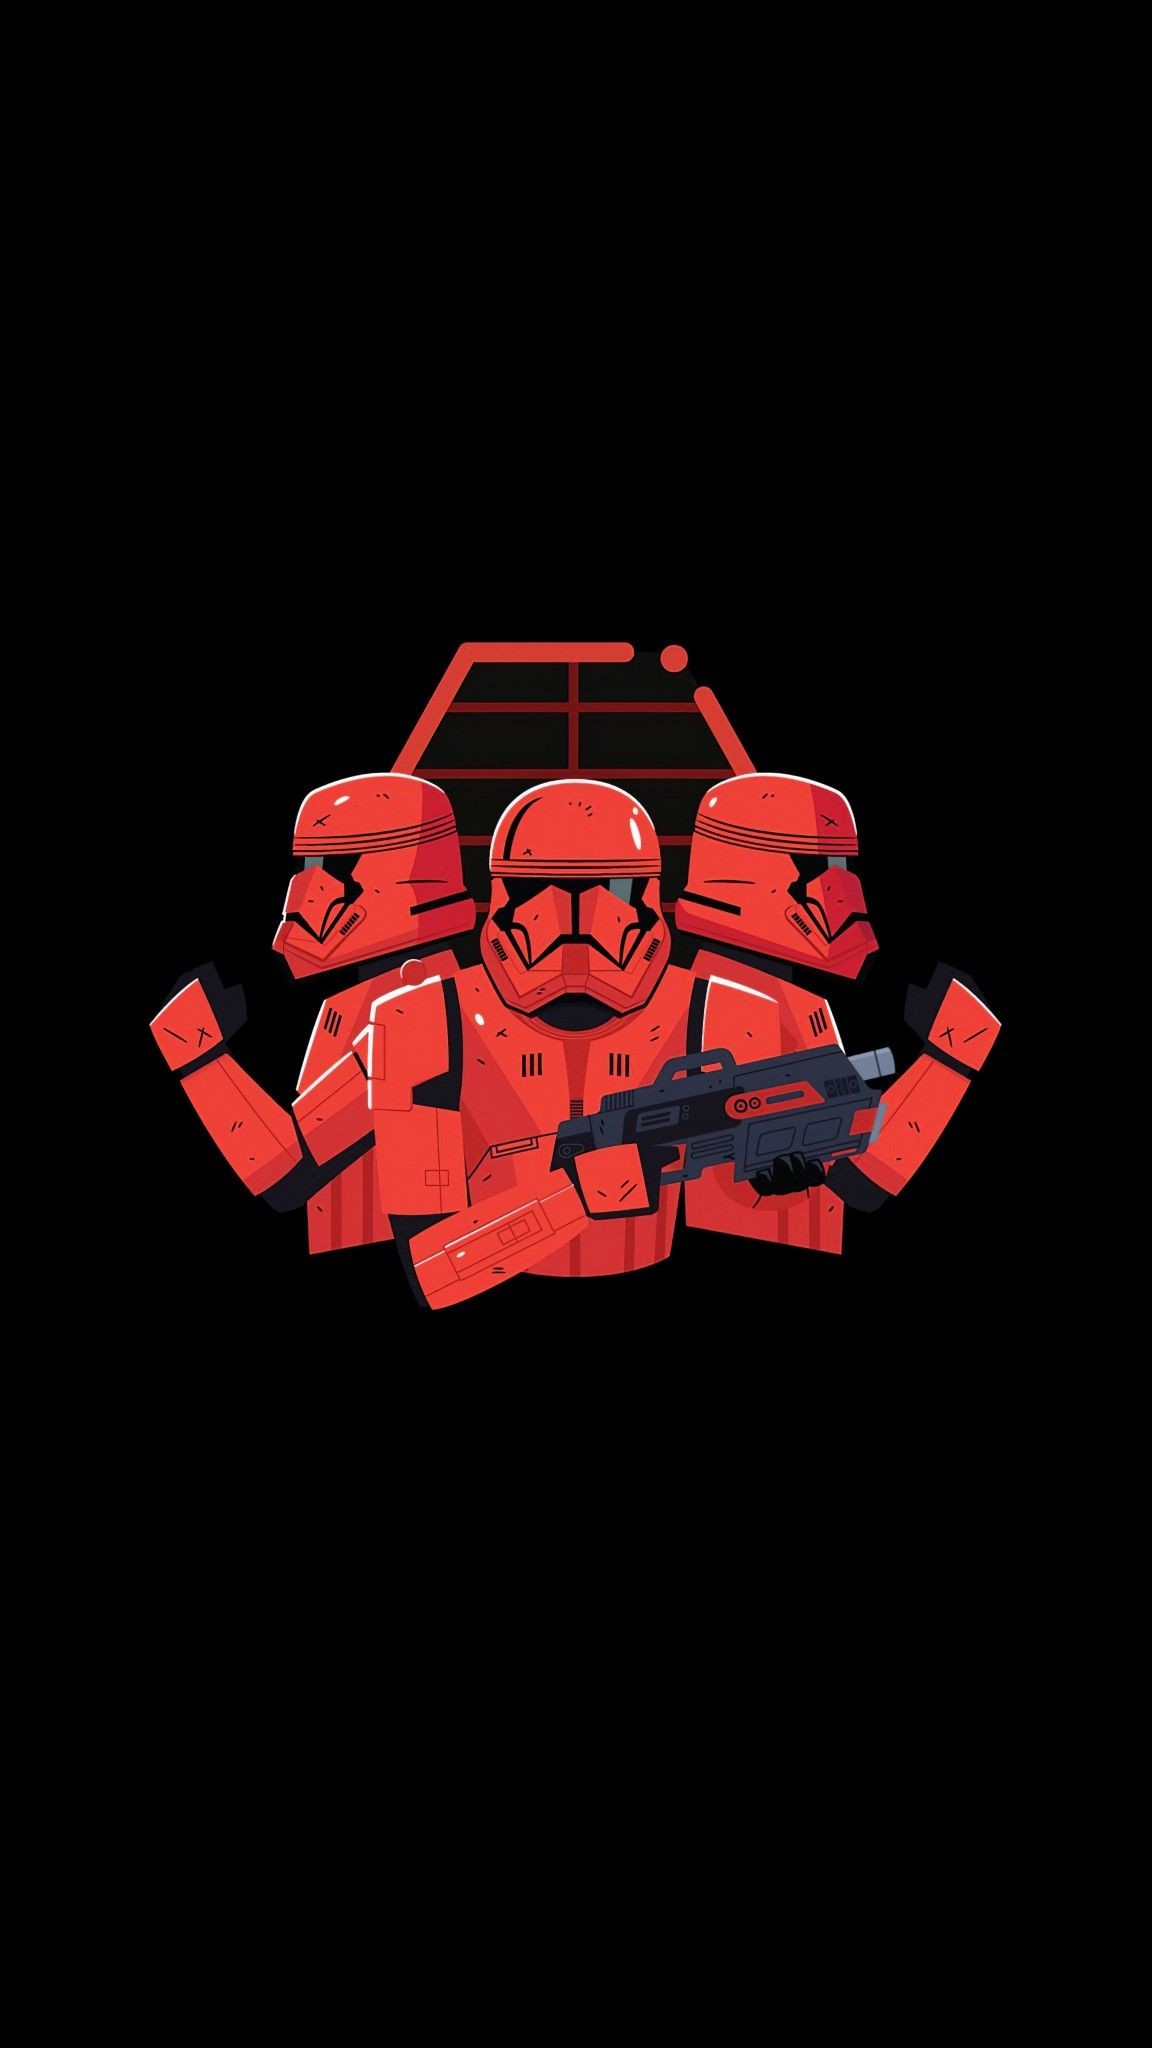 Storm Troopers Minimalist In 2020 Star Wars Movies Ranked Star Wars Wallpaper Iphone Star Wars Background